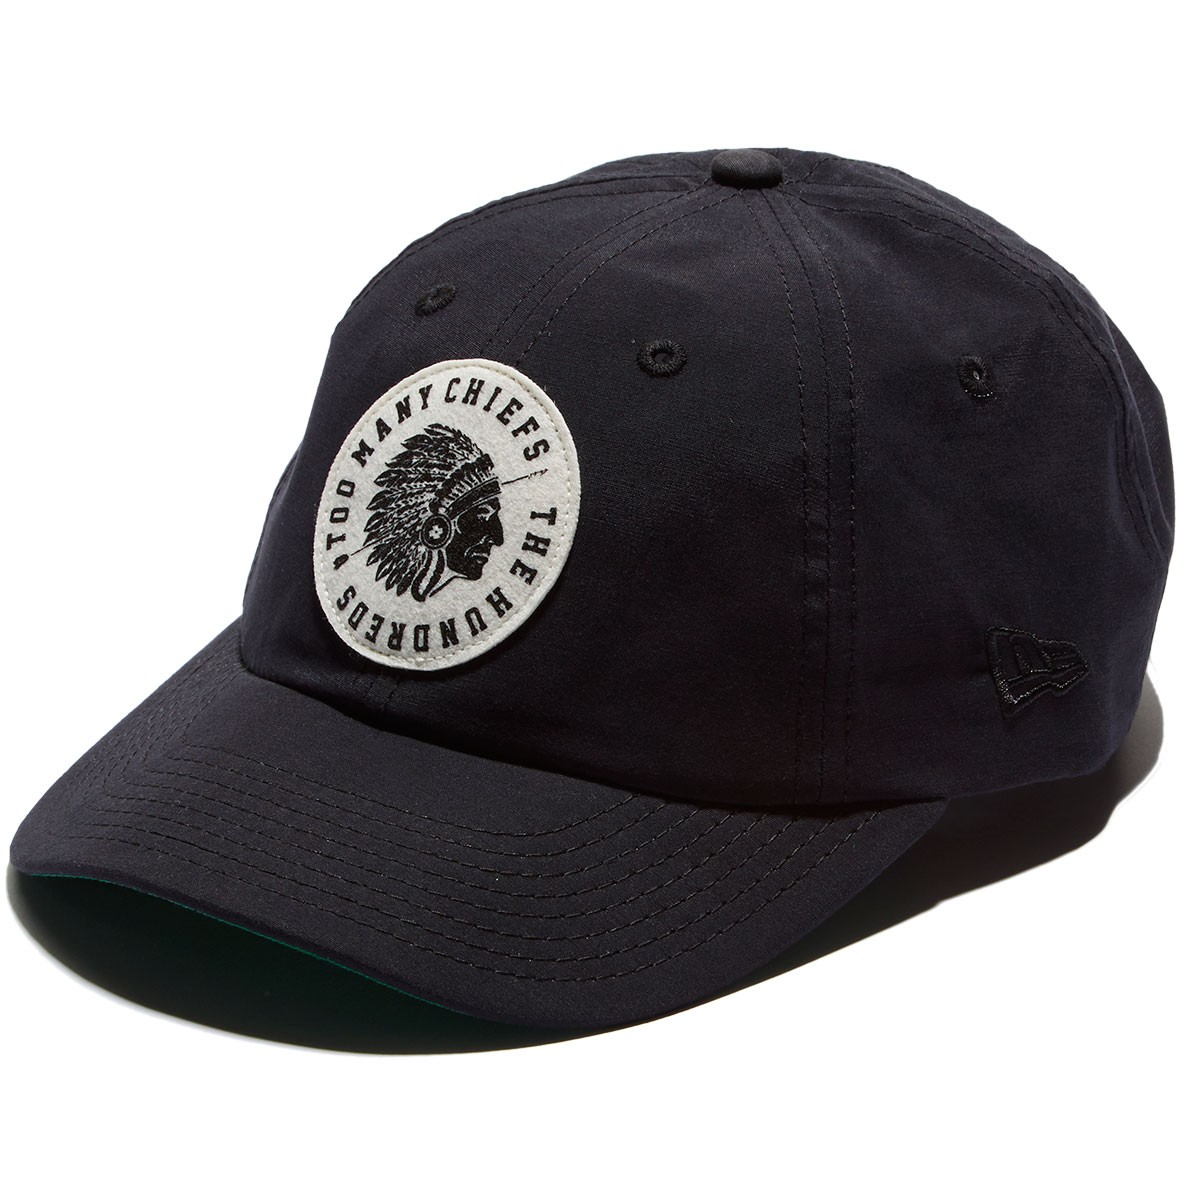 3992315a6a1 The Hundreds Chief New Era Hat - Black